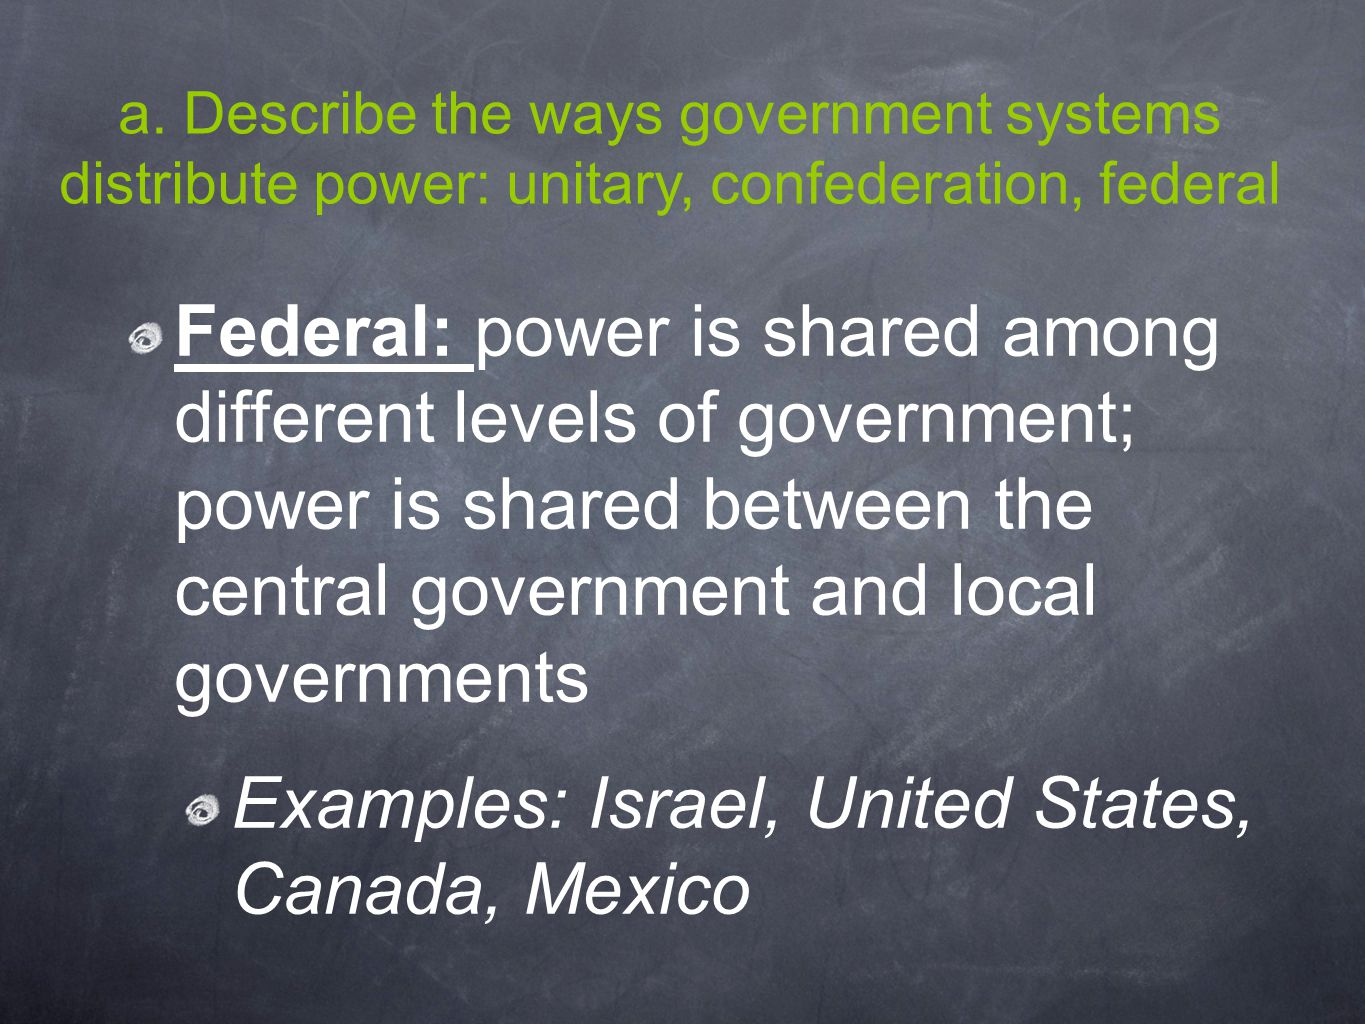 a. Describe the ways government systems distribute power: unitary, confederation, federal Federal: power is shared among different levels of governmen